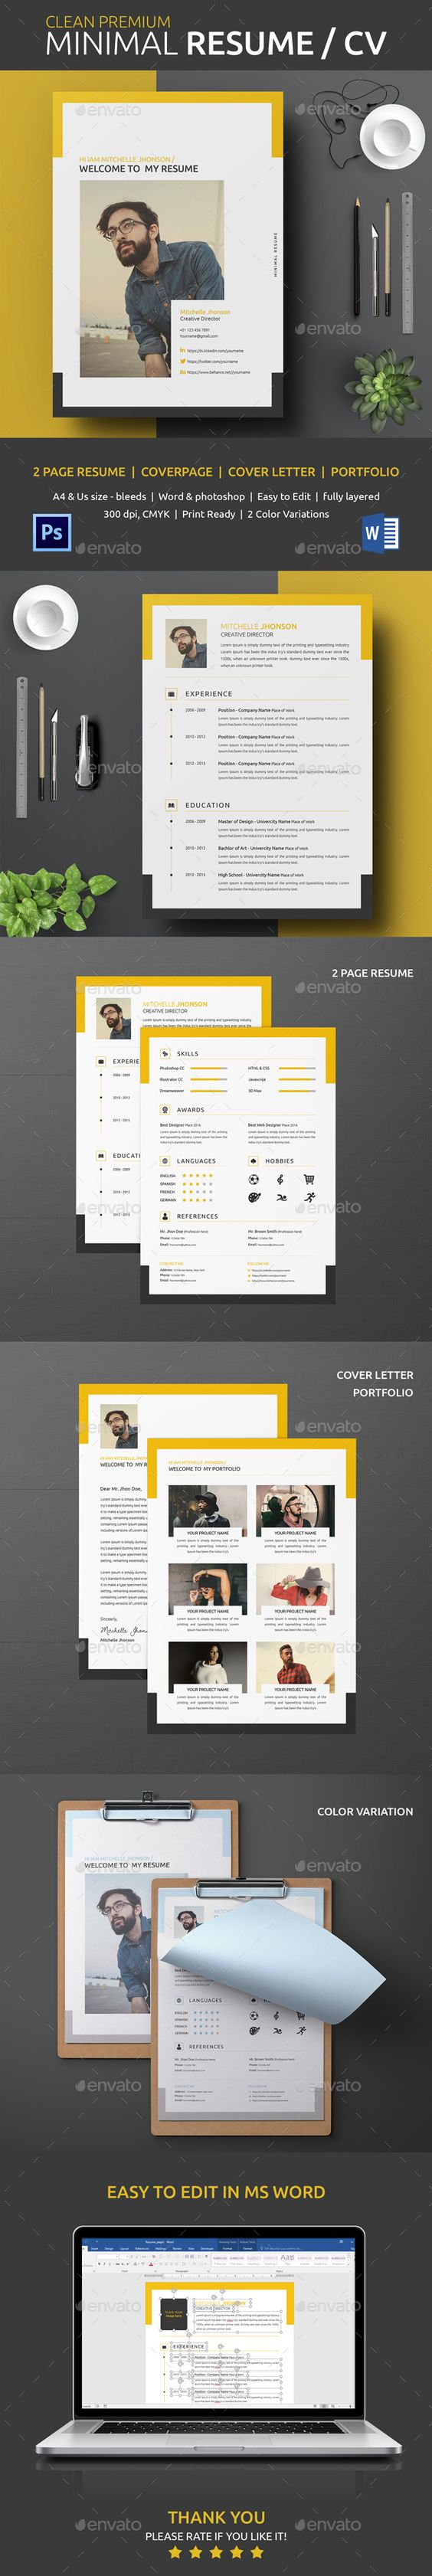 resume photoshop psd design clean cv  simple and clean resume cv template this professional resume file is an adobe photoshop format and ms word so you c